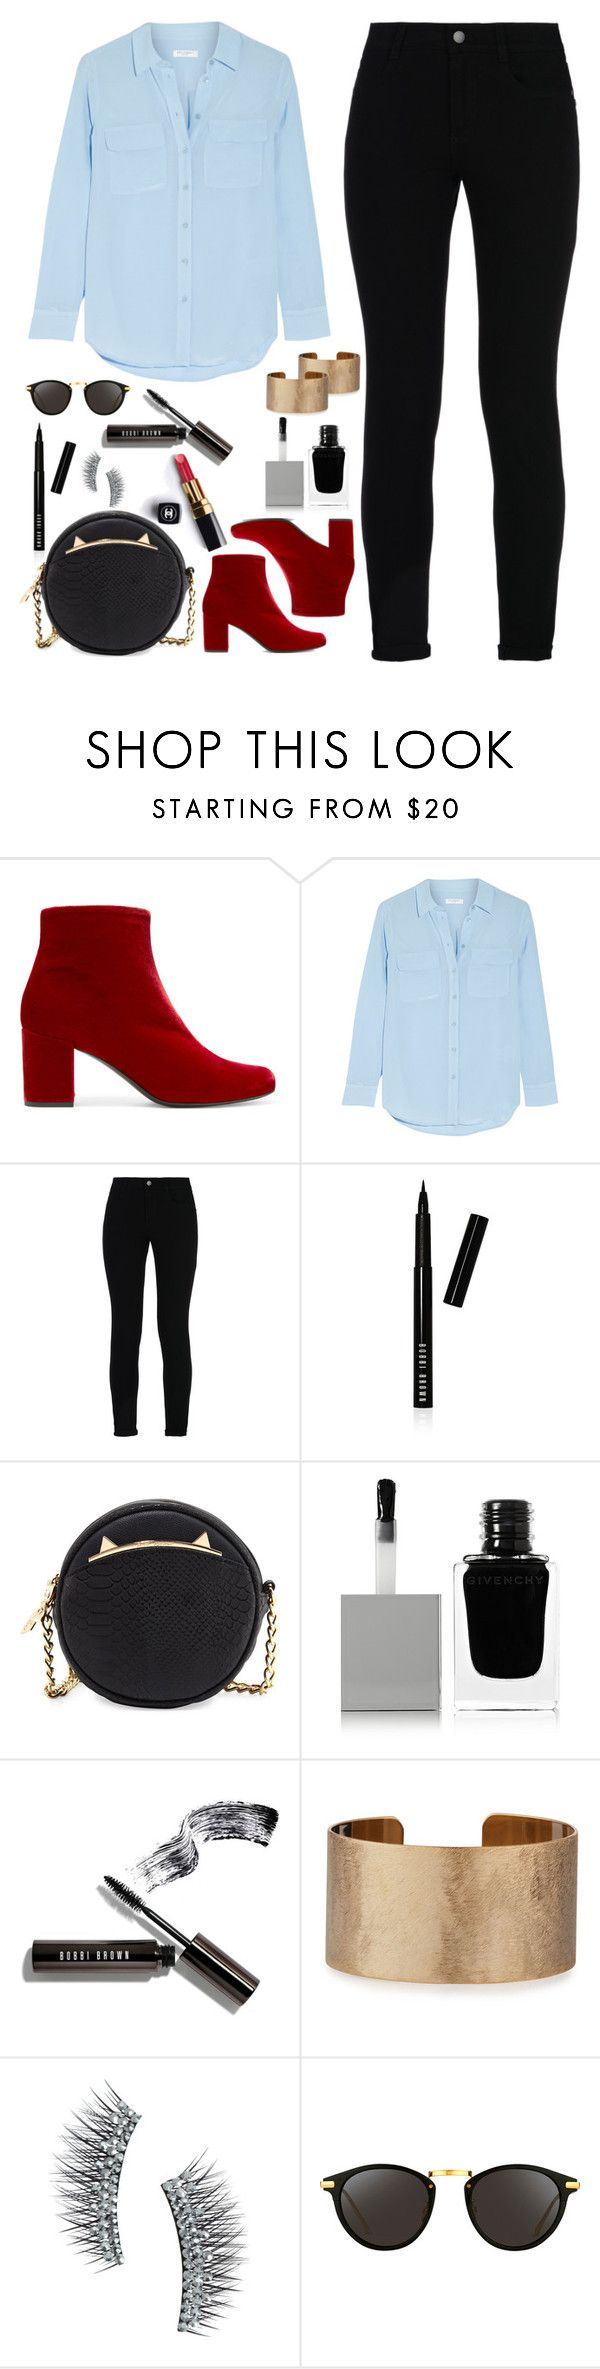 """""""Velvet Boots"""" by andreearucsandraedu ❤ liked on Polyvore featuring Yves Saint Laurent, Equipment, STELLA McCARTNEY, Bobbi Brown Cosmetics, Betsey Johnson, Chanel, Givenchy, Panacea, Kre-at Beauty and Linda Farrow"""